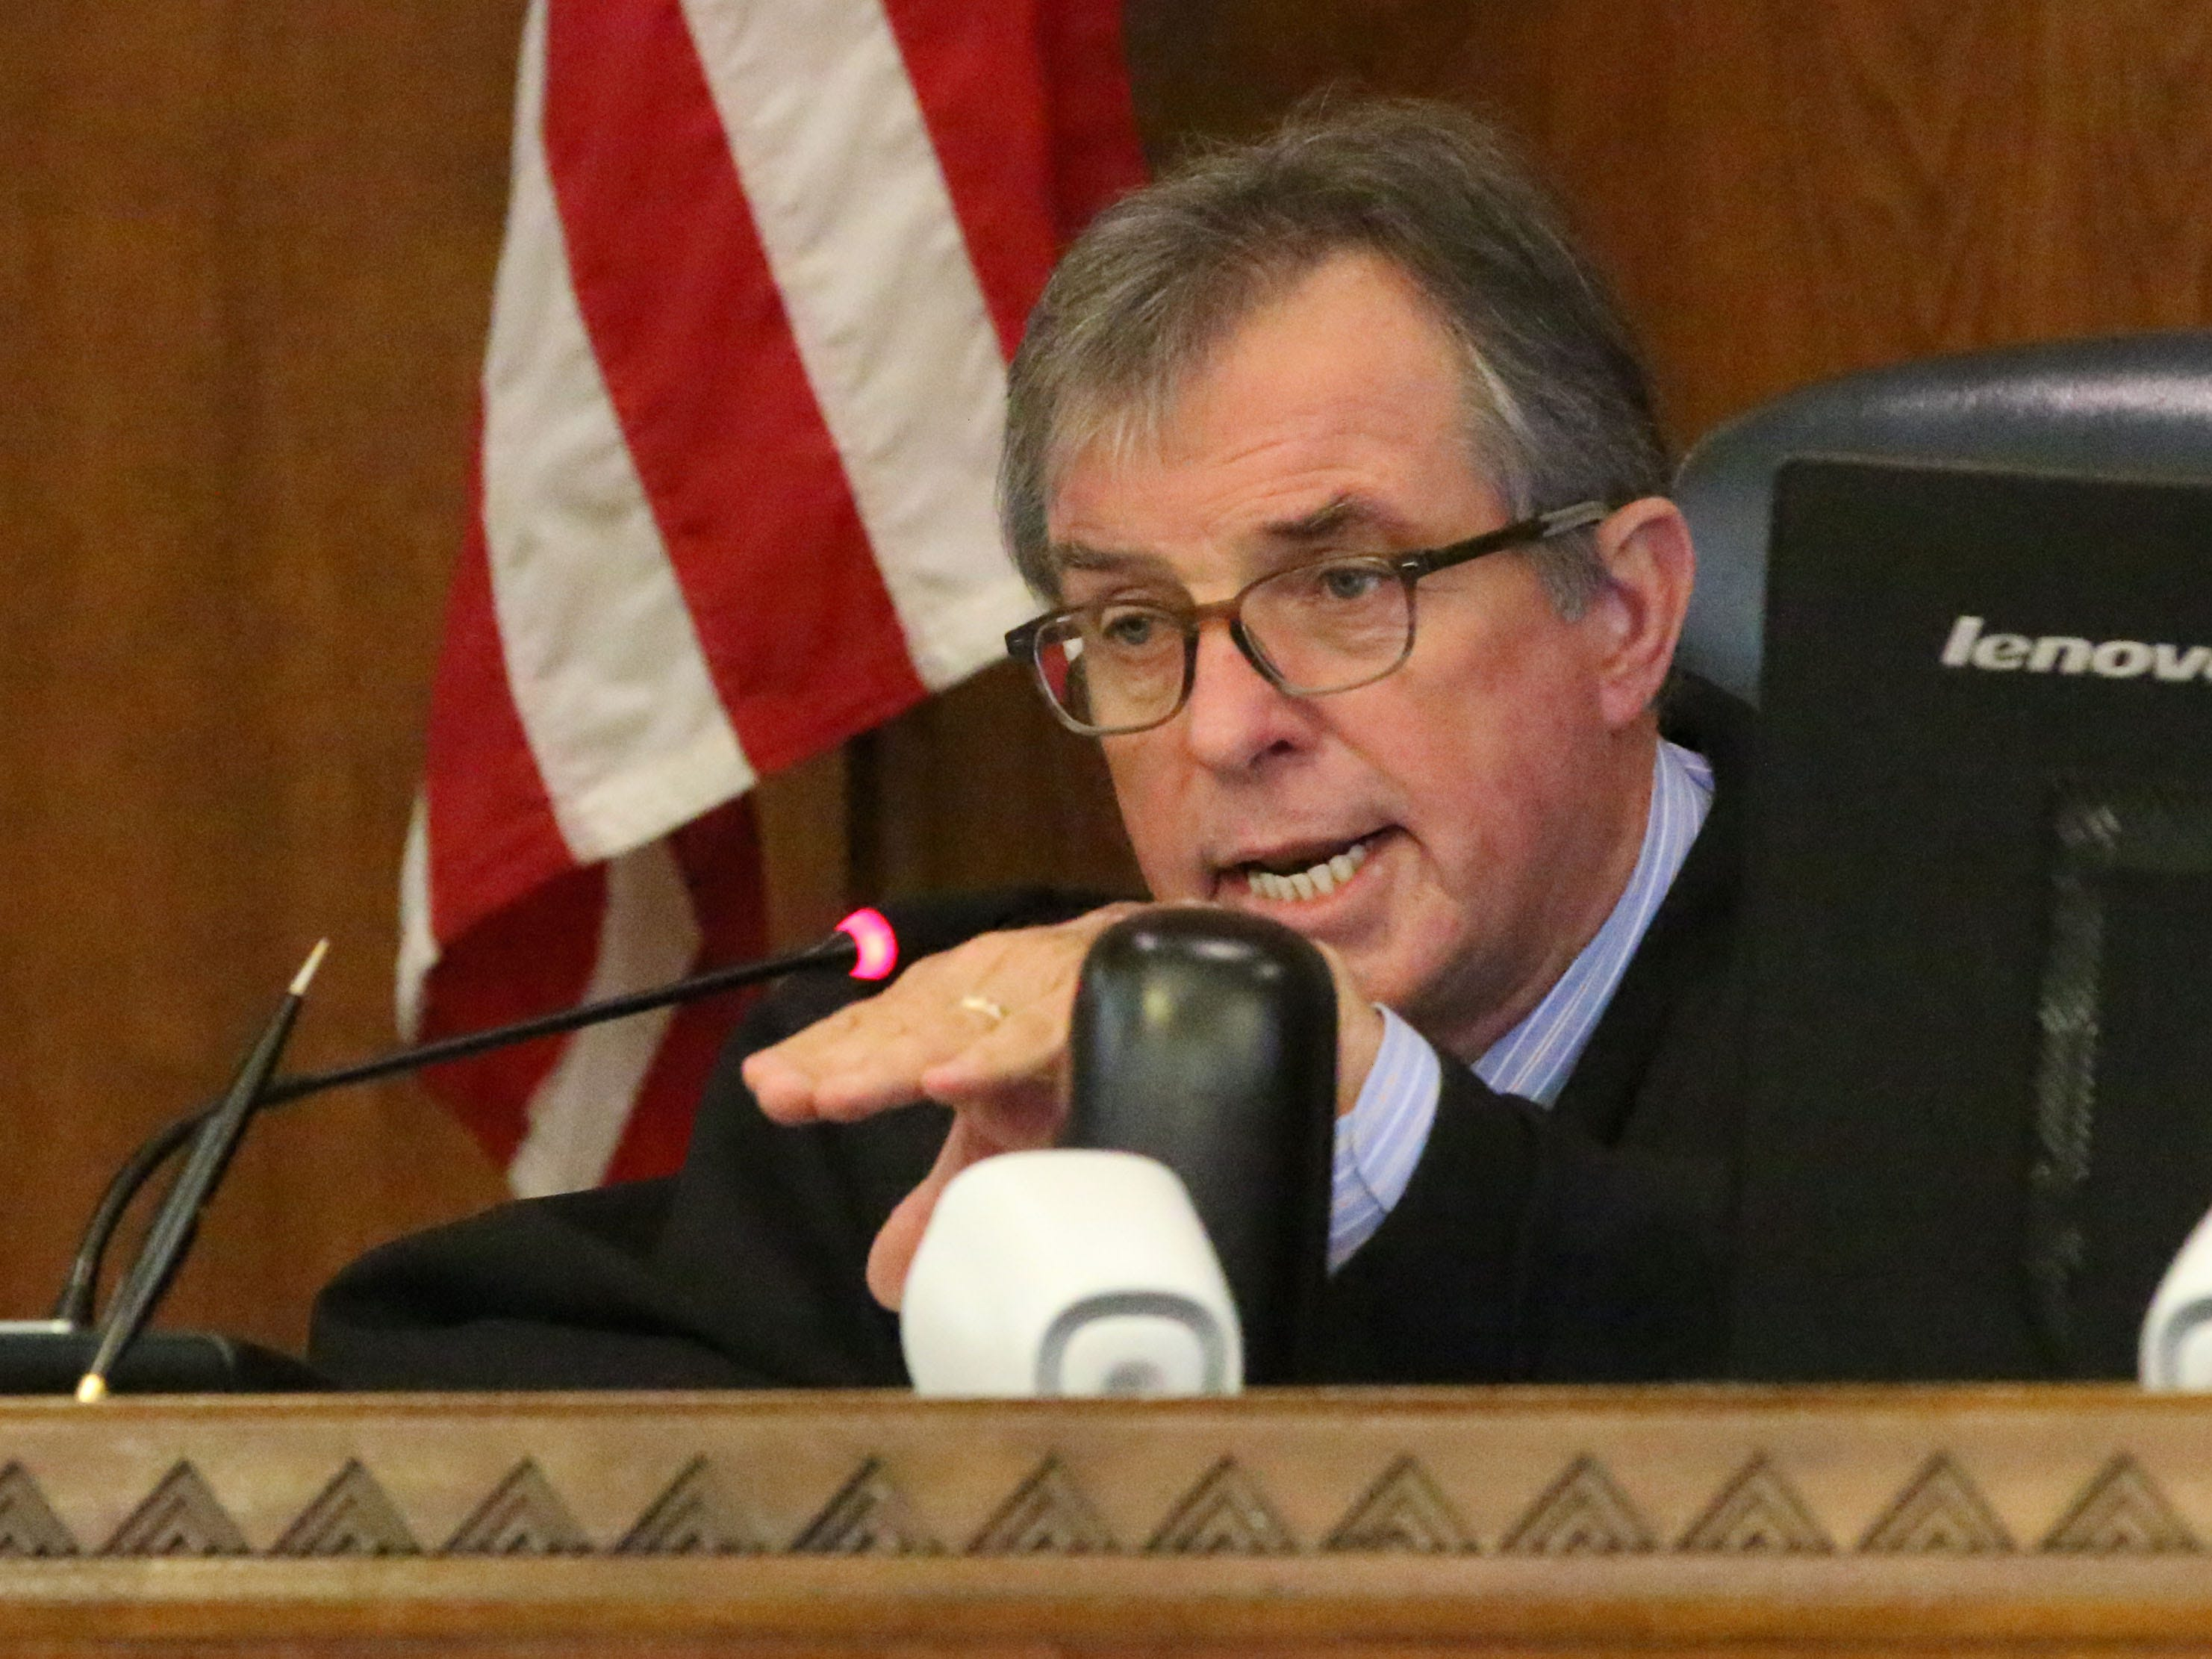 Sheboygan County Circuit Court Judge L. Edward Stengel speaks during the sentencing hearing for Anthony James Keyport, Friday, October 12, 2018, in Sheboygan, Wis. Keyport was given jail and probation for his involvement in the Kinship Companions kennel case.